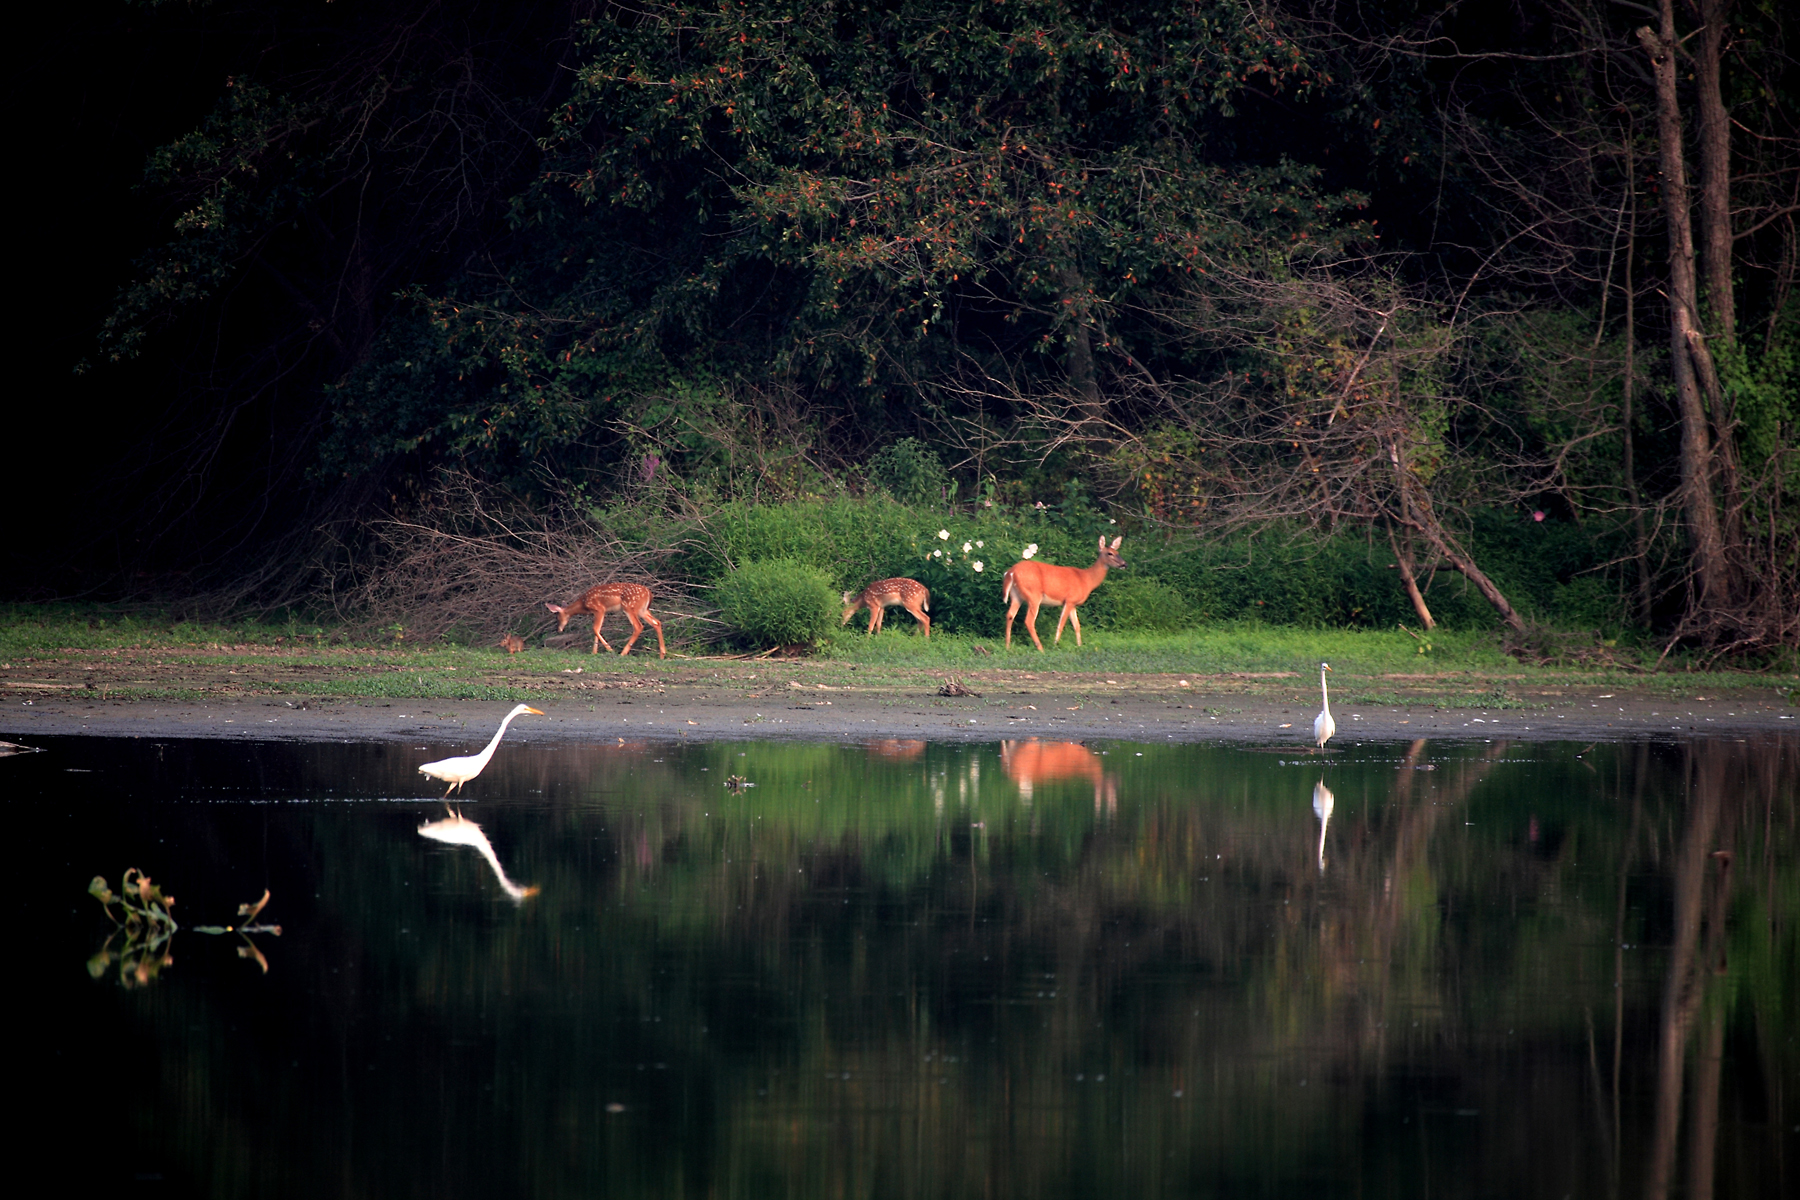 egrets and deer